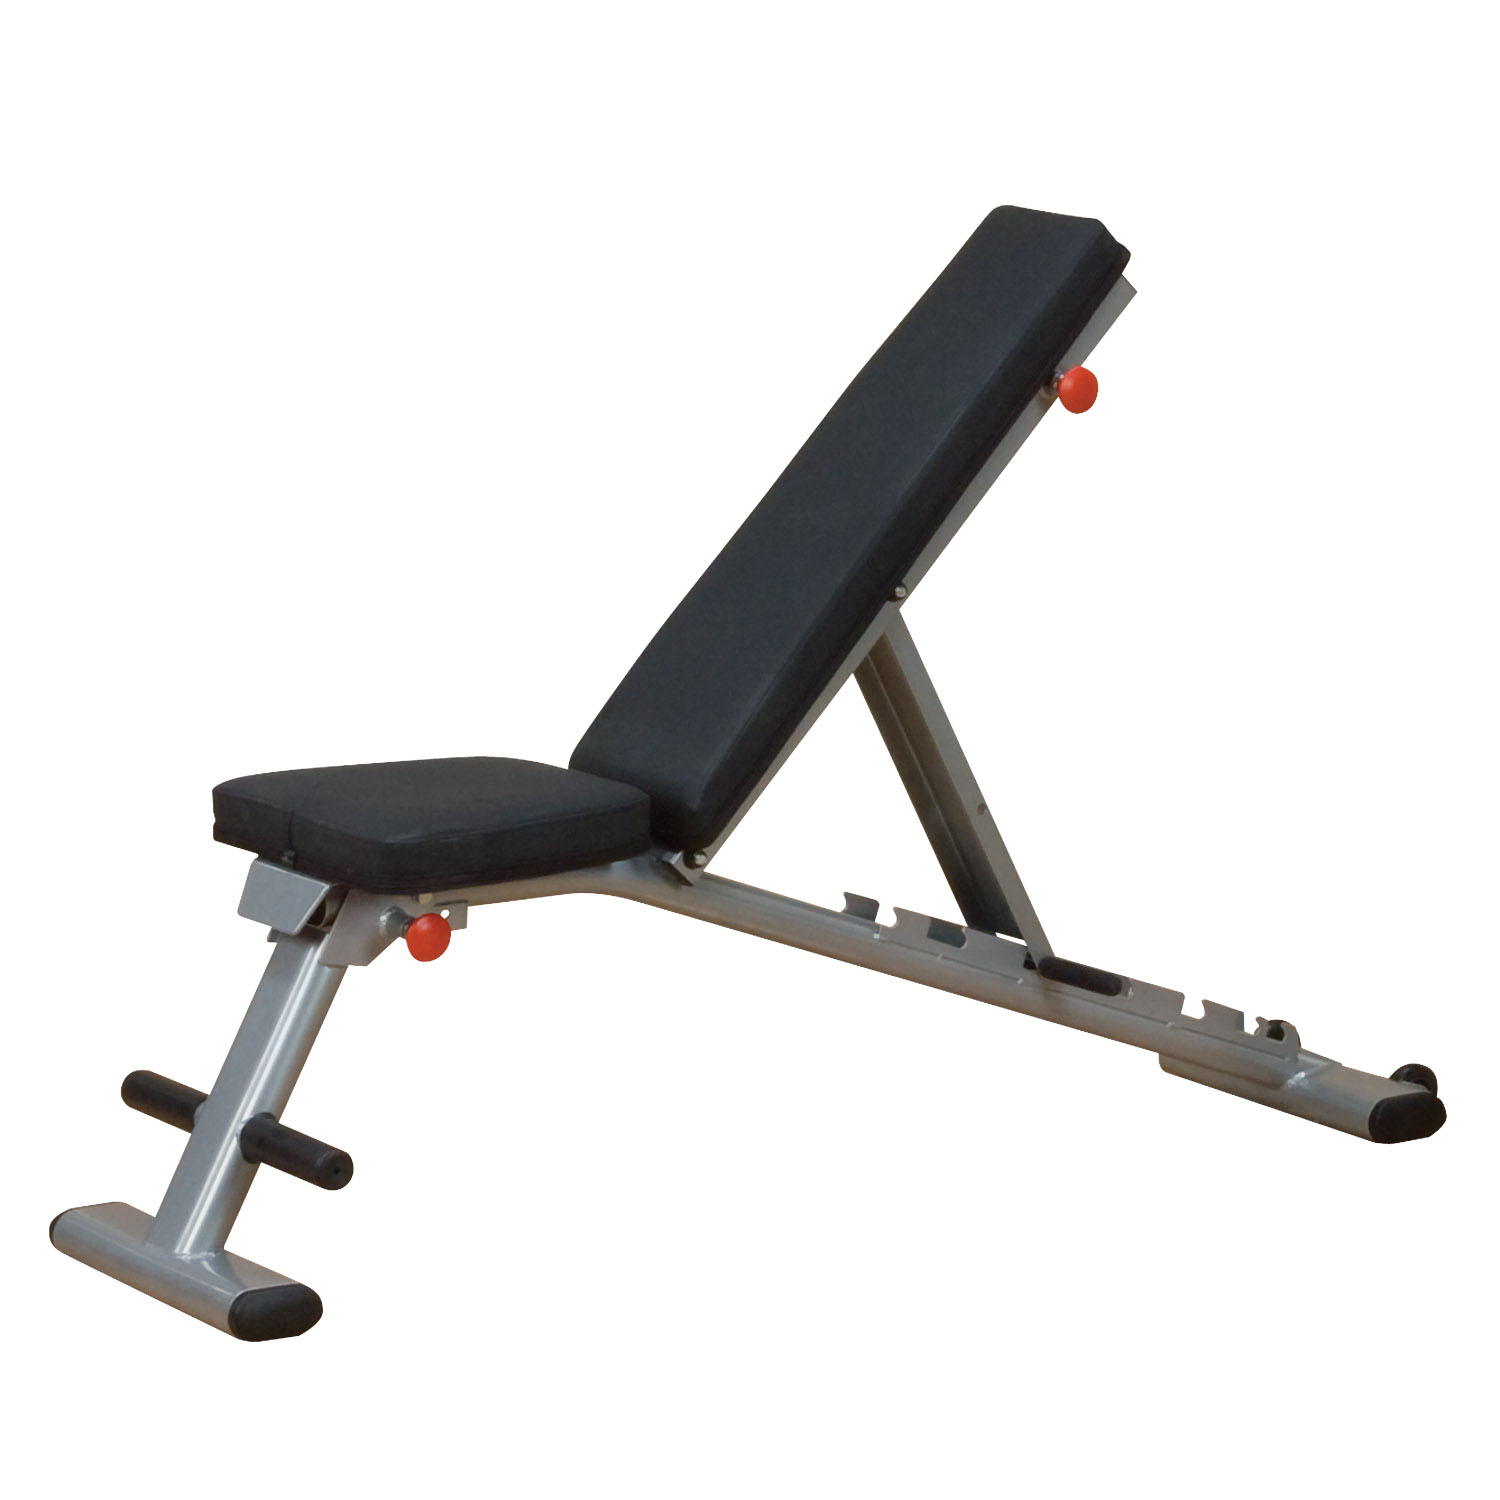 Body Solid Folding Adjustable Multi-Use Exercise Lifting Workout Bench | GFID225, different types of weight benches,working out equipment,1000 lb capacity weight bench